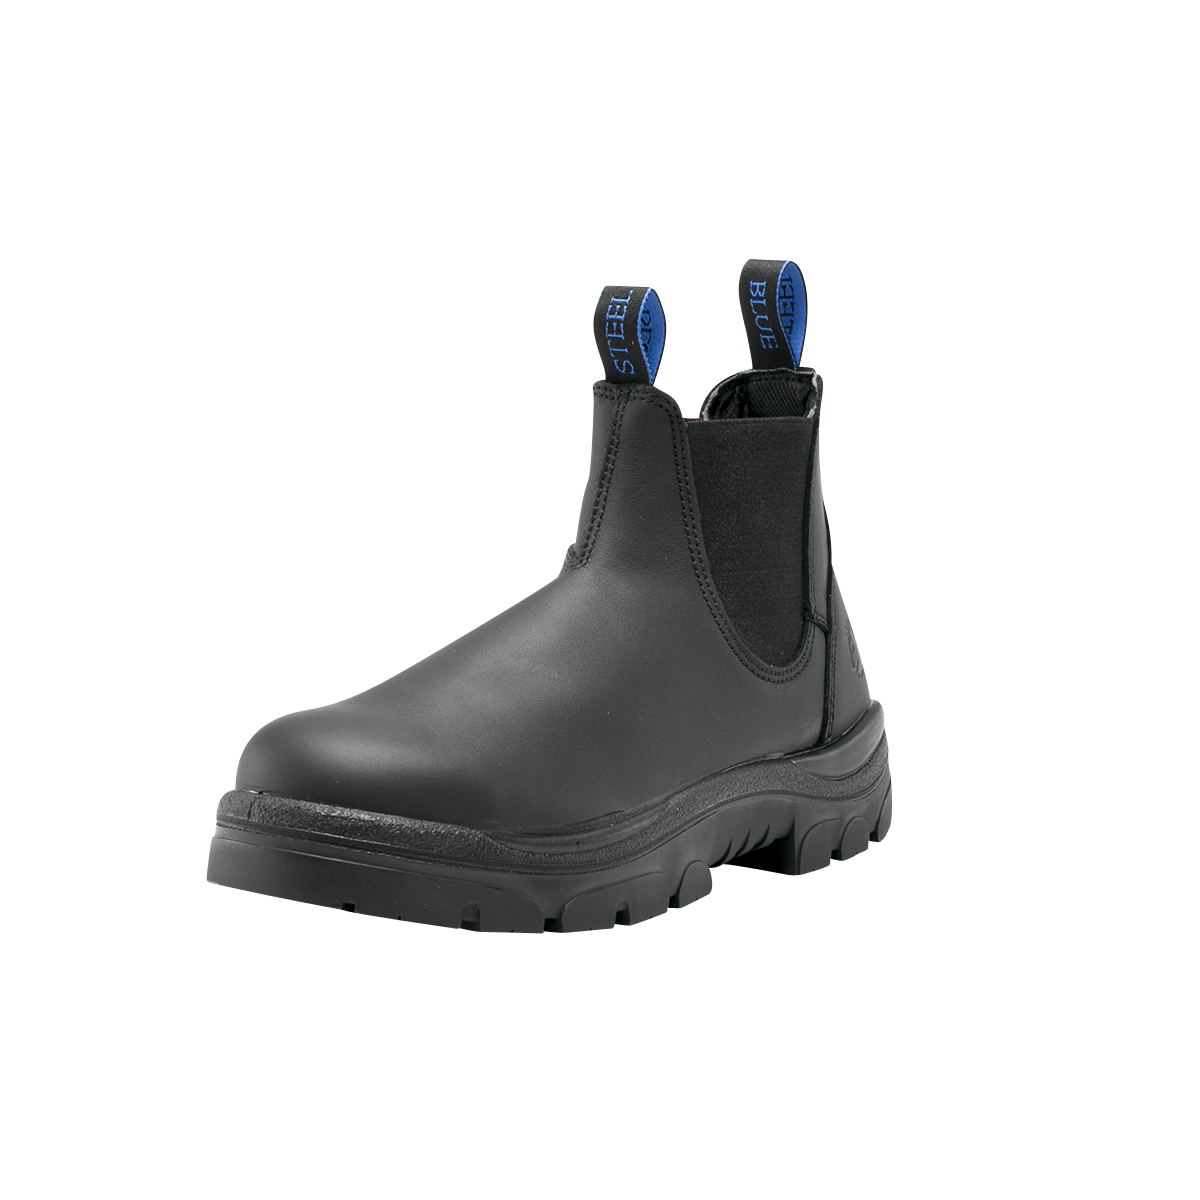 Ankle Work Boot With Steel Toe Cap